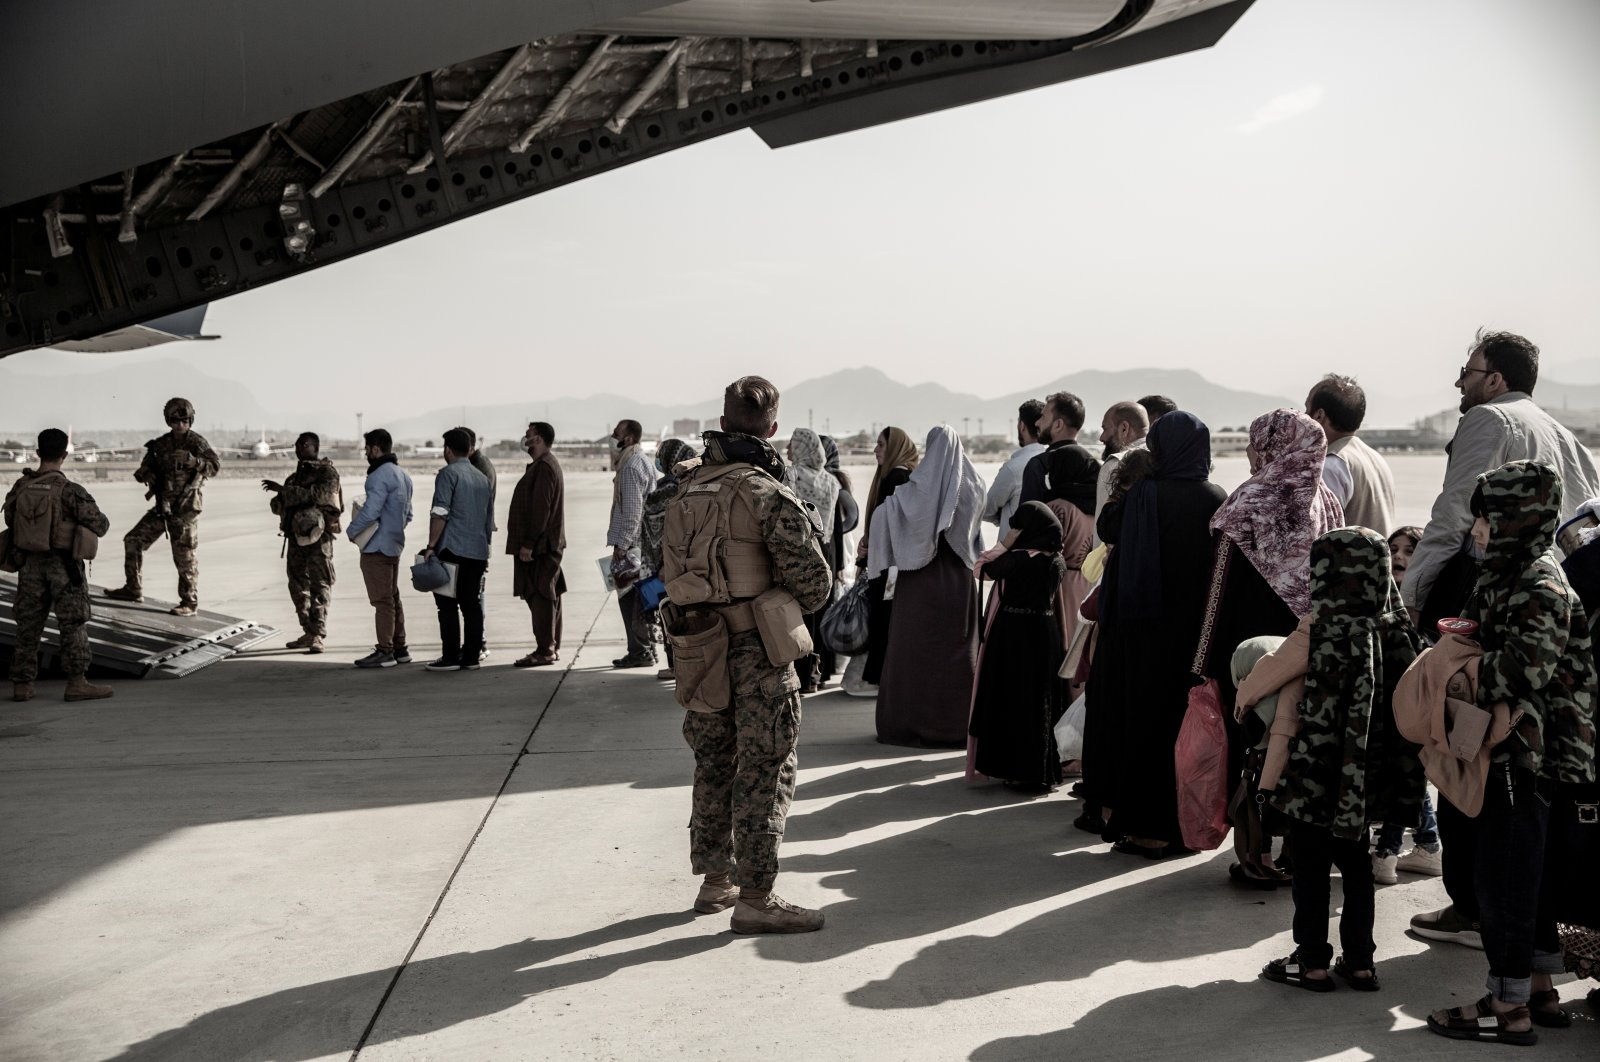 Evacuees wait to board a Boeing C-17 Globemaster III during an evacuation at Hamid Karzai International Airport in Kabul, Afghanistan August 30, 2021. (REUTERS Photo)